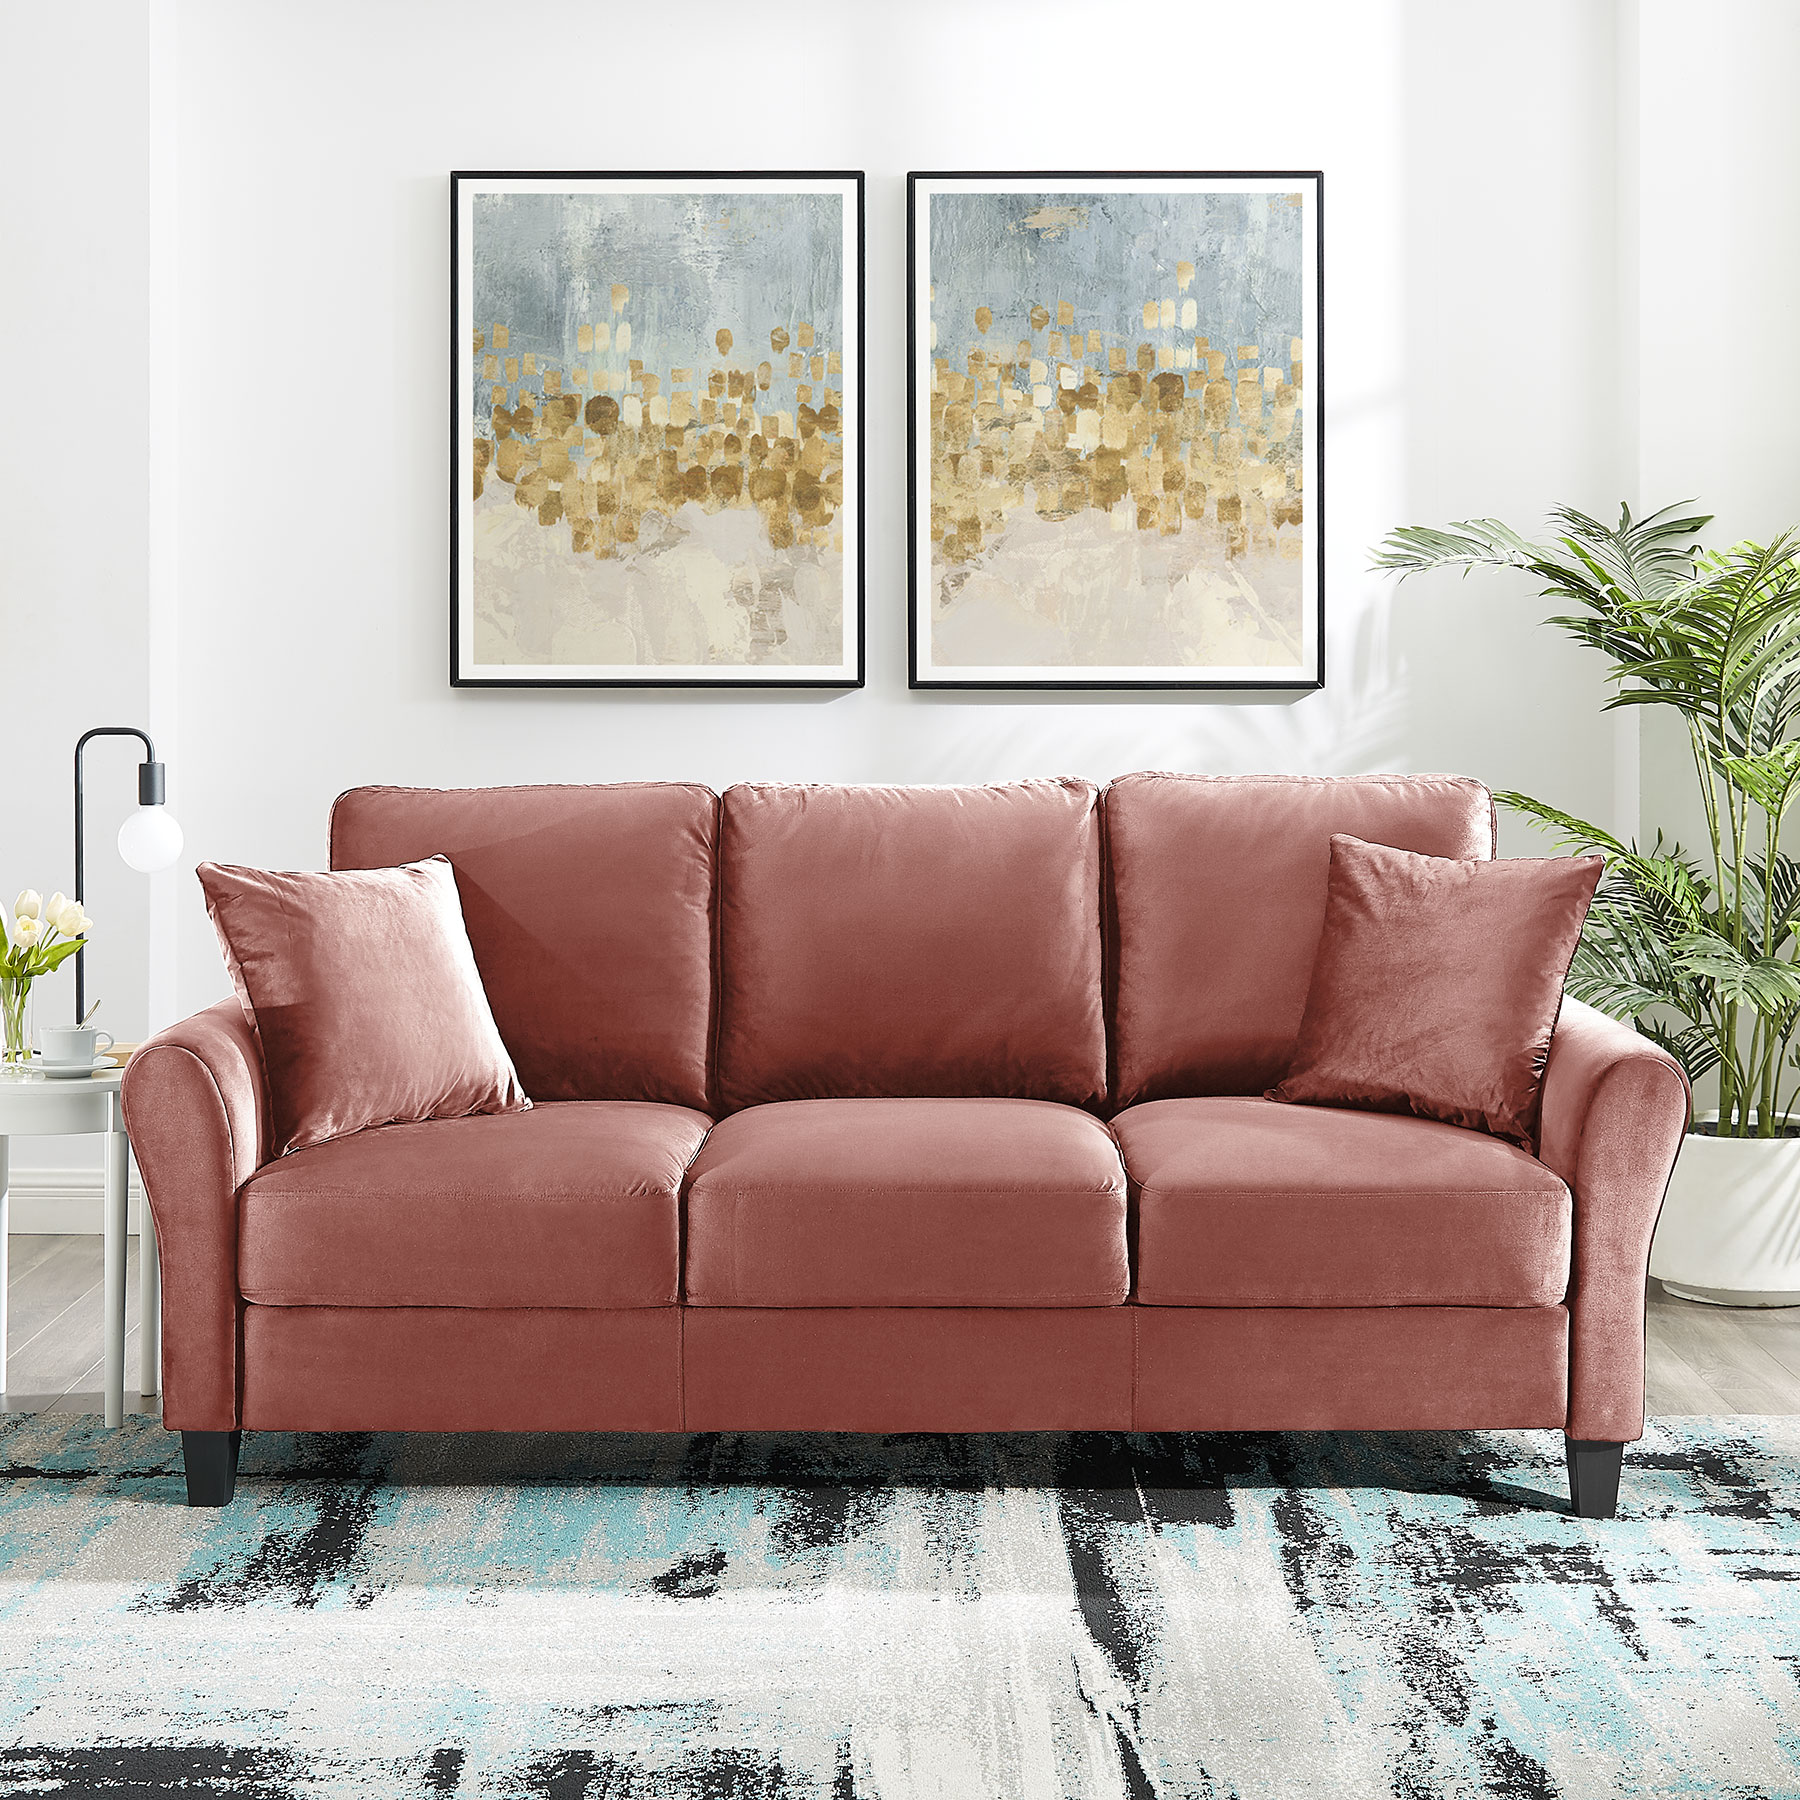 Tribesigns 20 seat Sofa Couch Modern Sofas for Home Living Room Apartment